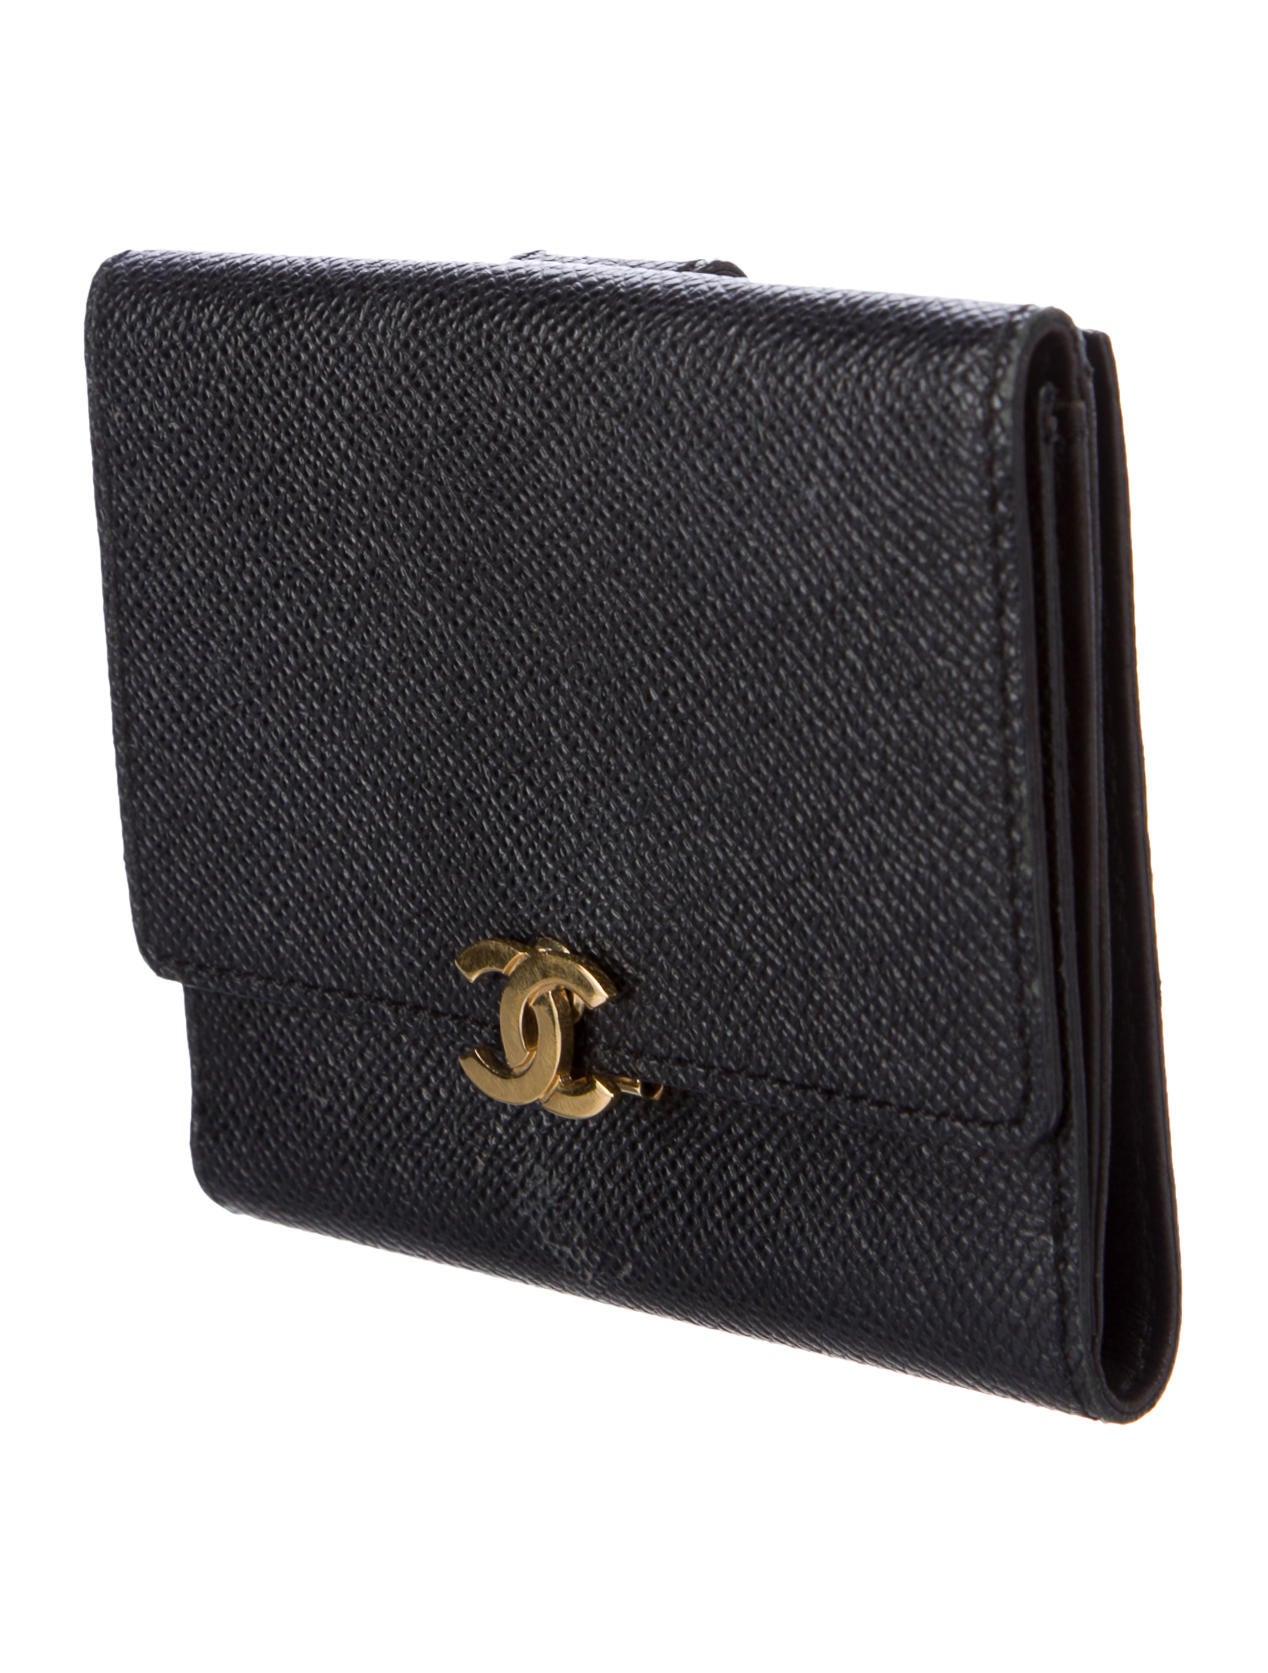 149b2e382bca Chanel French Purse Wallet | Stanford Center for Opportunity Policy ...